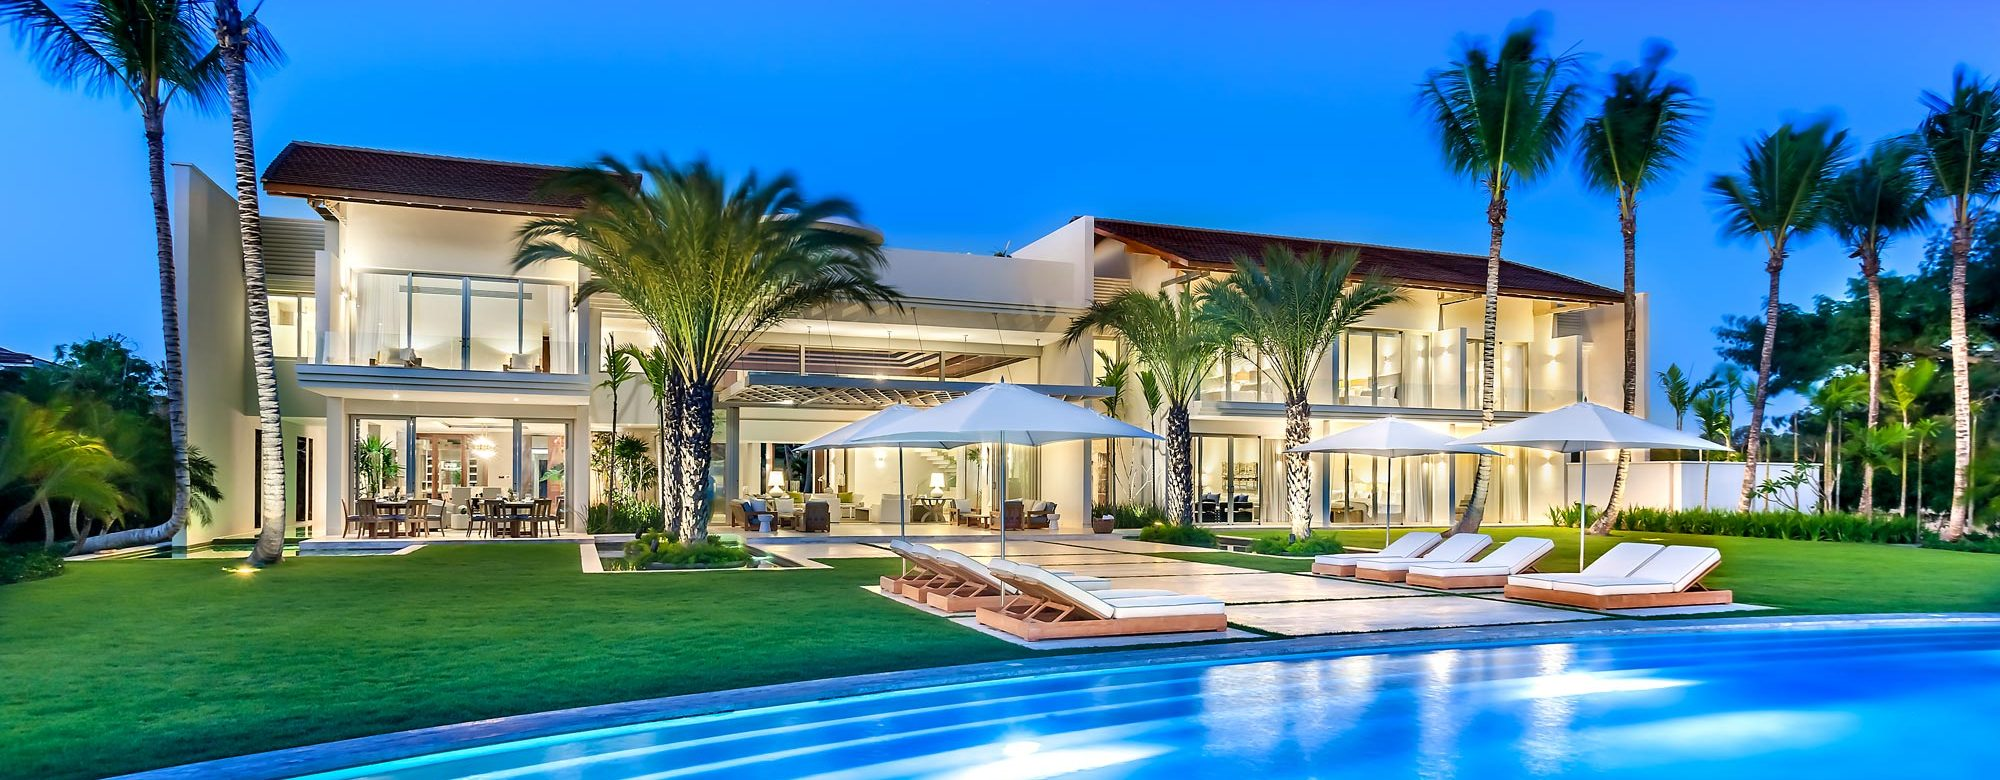 Costamar 10 your breathtaking island home provaltur for Casa de campo